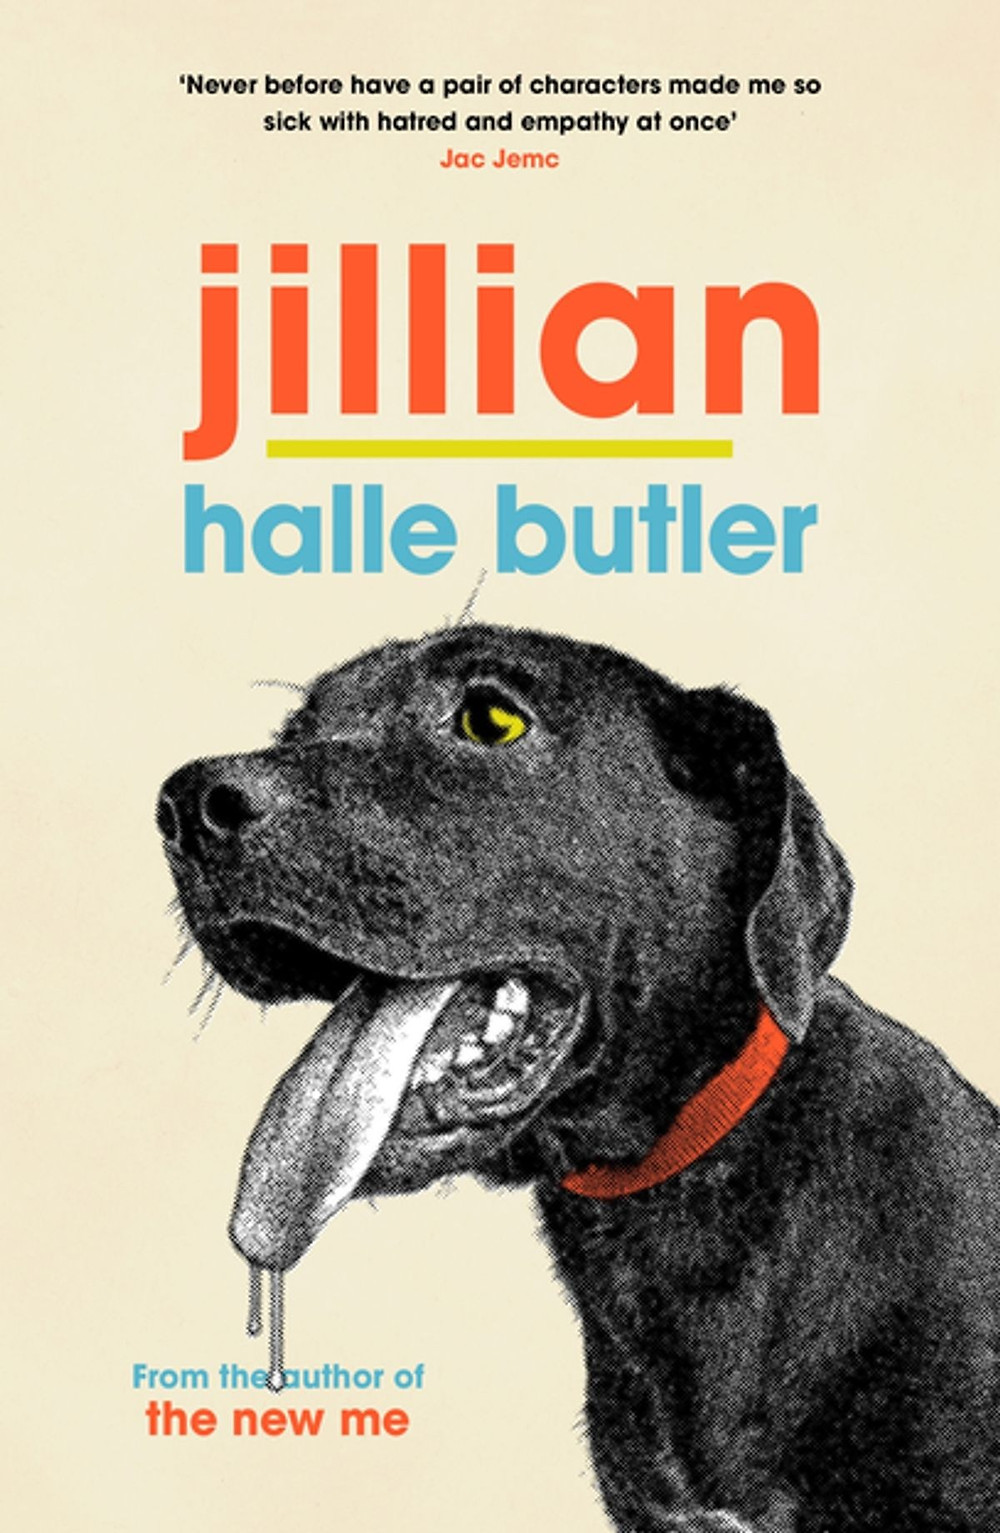 "Jillian by  Halle Butler. the book slut book reviews. thebookslut The ""sublimely awkward and hilarious"" (Chicago Tribune), National Book Award ""5 Under 35""-garnering first novel from the acclaimed author of The New Me--now in a new edition Twenty-four-year-old Megan may have her whole life ahead of her, but it already feels like a dead end, thanks to her dreadful job as a gastroenterologist's receptionist and her heart-clogging resentment of the success and happiness of everyone around her. But no one stokes Megan's bitterness quite like her coworker, Jillian, a grotesquely optimistic, thirty-five-year-old single mother whose chirpy positivity obscures her mounting struggles. Megan and Jillian's lives become increasingly precarious as their faulty coping mechanisms--denial, self-help books, alcohol, religion, prescription painkillers, obsessive criticism, alienated boyfriends, and, in Jillian's case, the misguided purchase of a dog--send them spiraling toward their downfalls. Wickedly authentic and brutally funny, Jillian is a subversive portrait of two women trapped in cycles of self-delusion and self-destruction, each more like the other than they would care to admit. Product Details Price $16.00  $14.72 Publisher Penguin Books Publish Date July 07, 2020 Pages 208 Dimensions 5.2 X 0.5 X 7.4 inches 